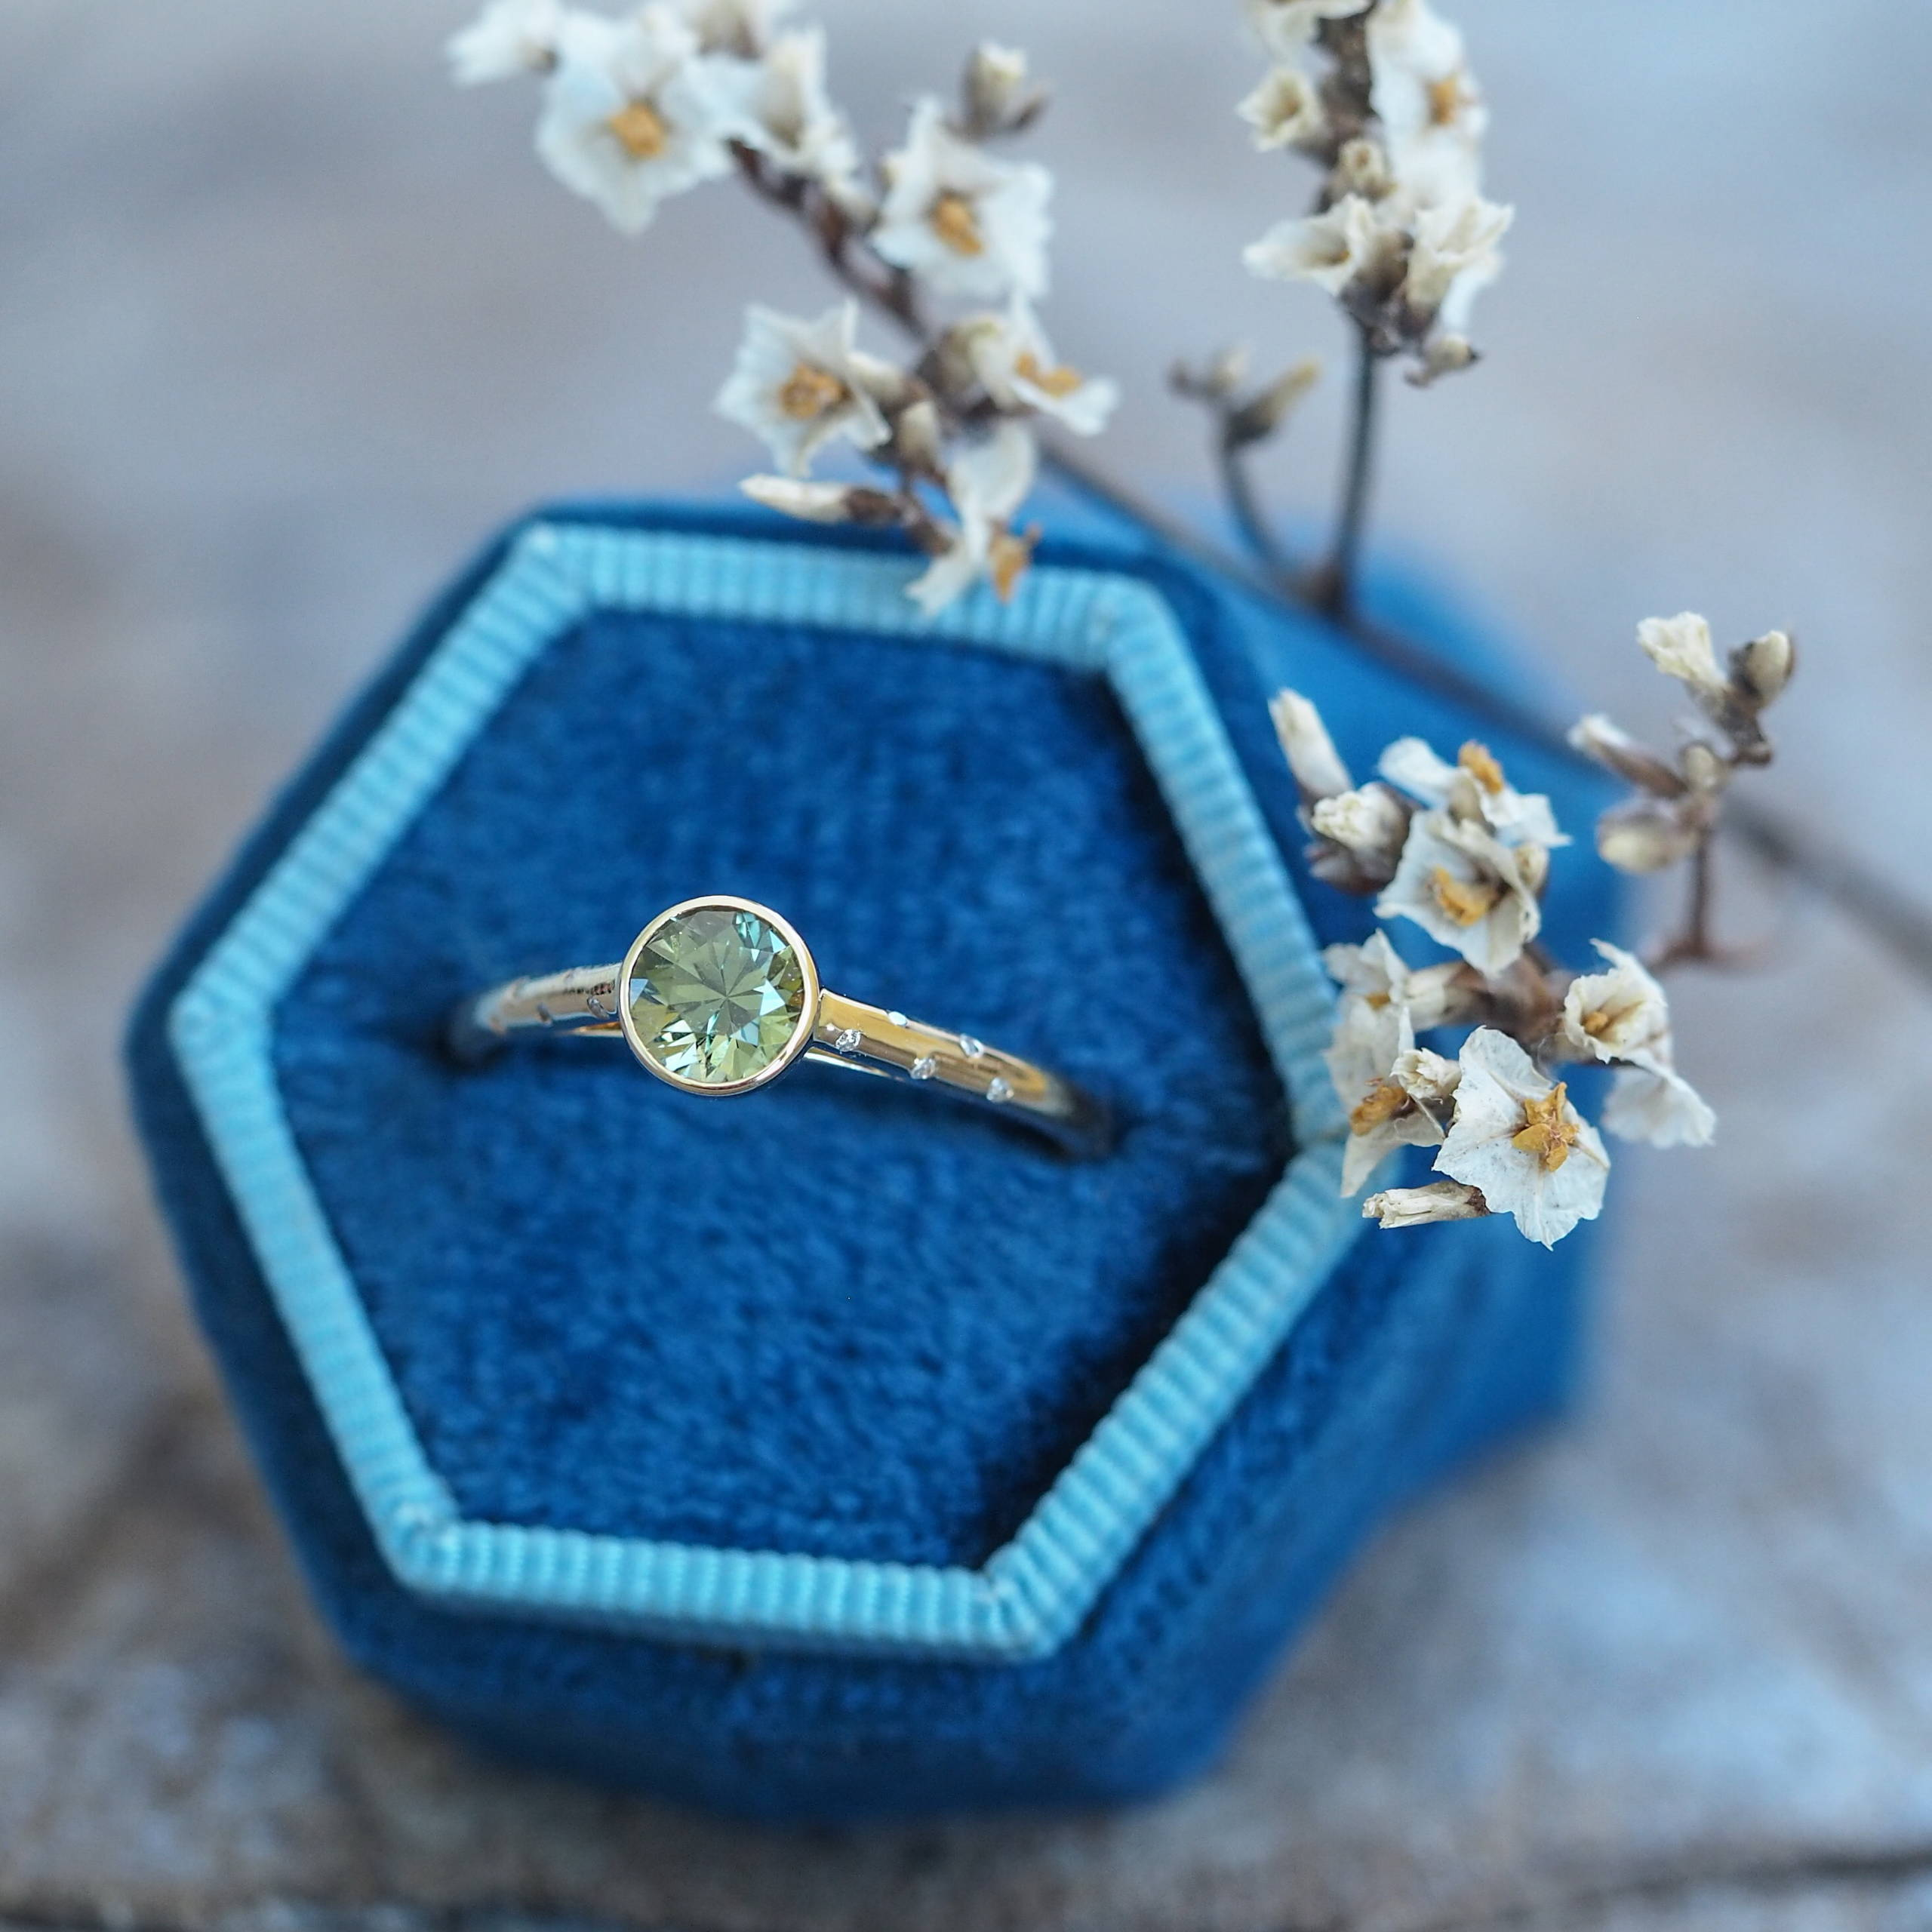 A custom made ethical gold sapphire ring featuring an ethically sourced sapphire from Borneo and conflict free diamonds.